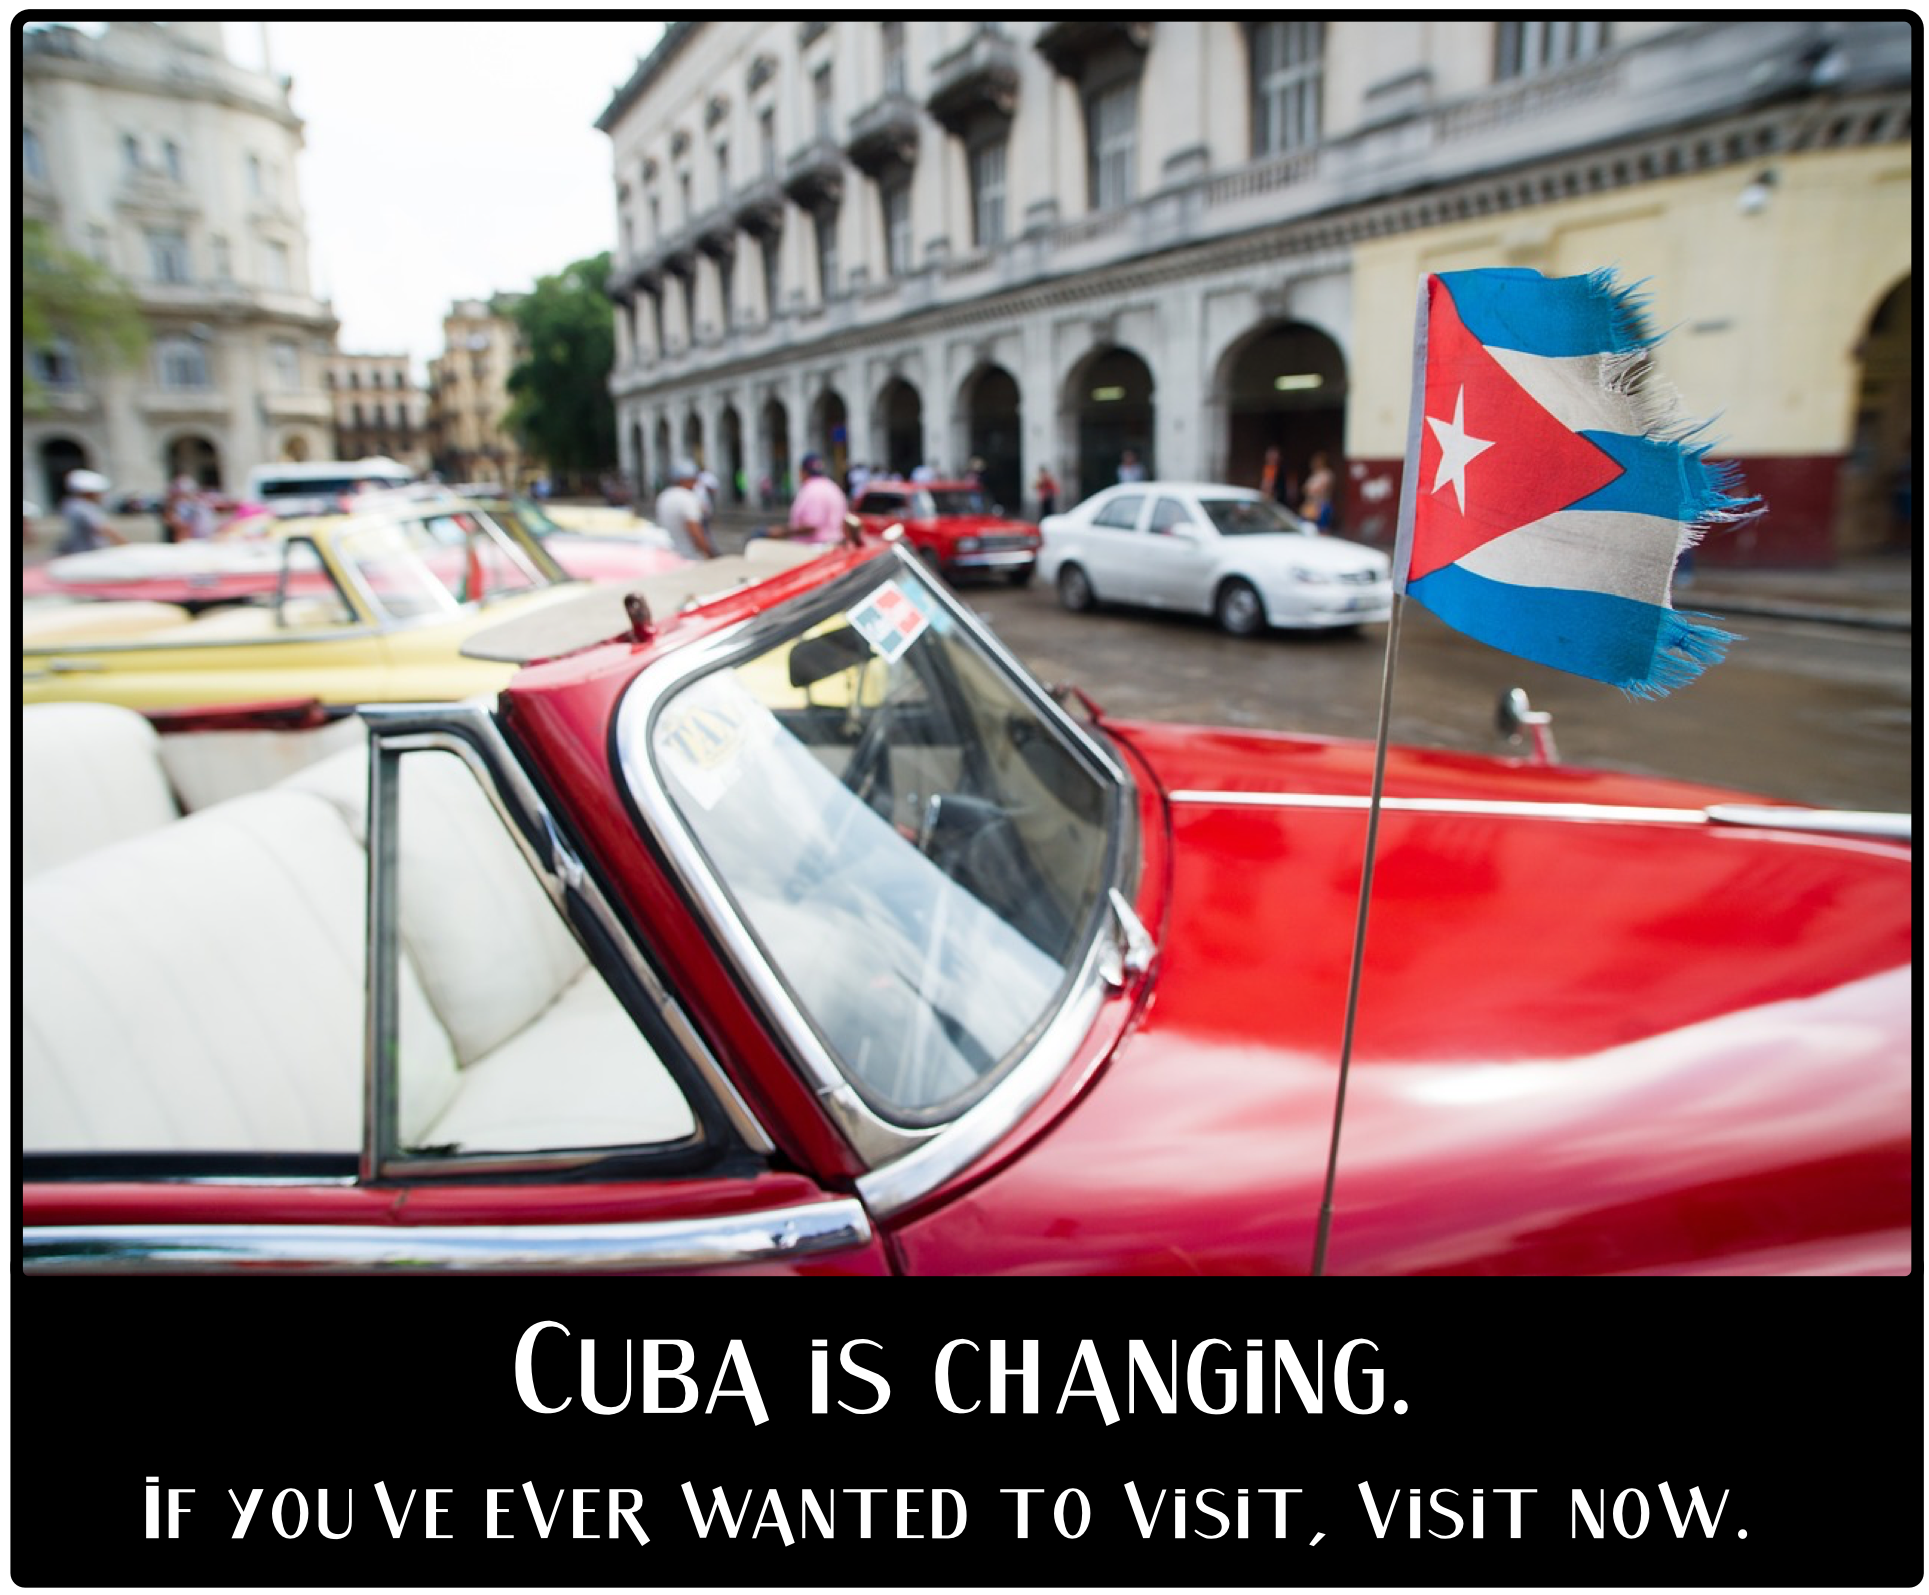 Cuba is changing. If you've ever wanted to visit, visit now.